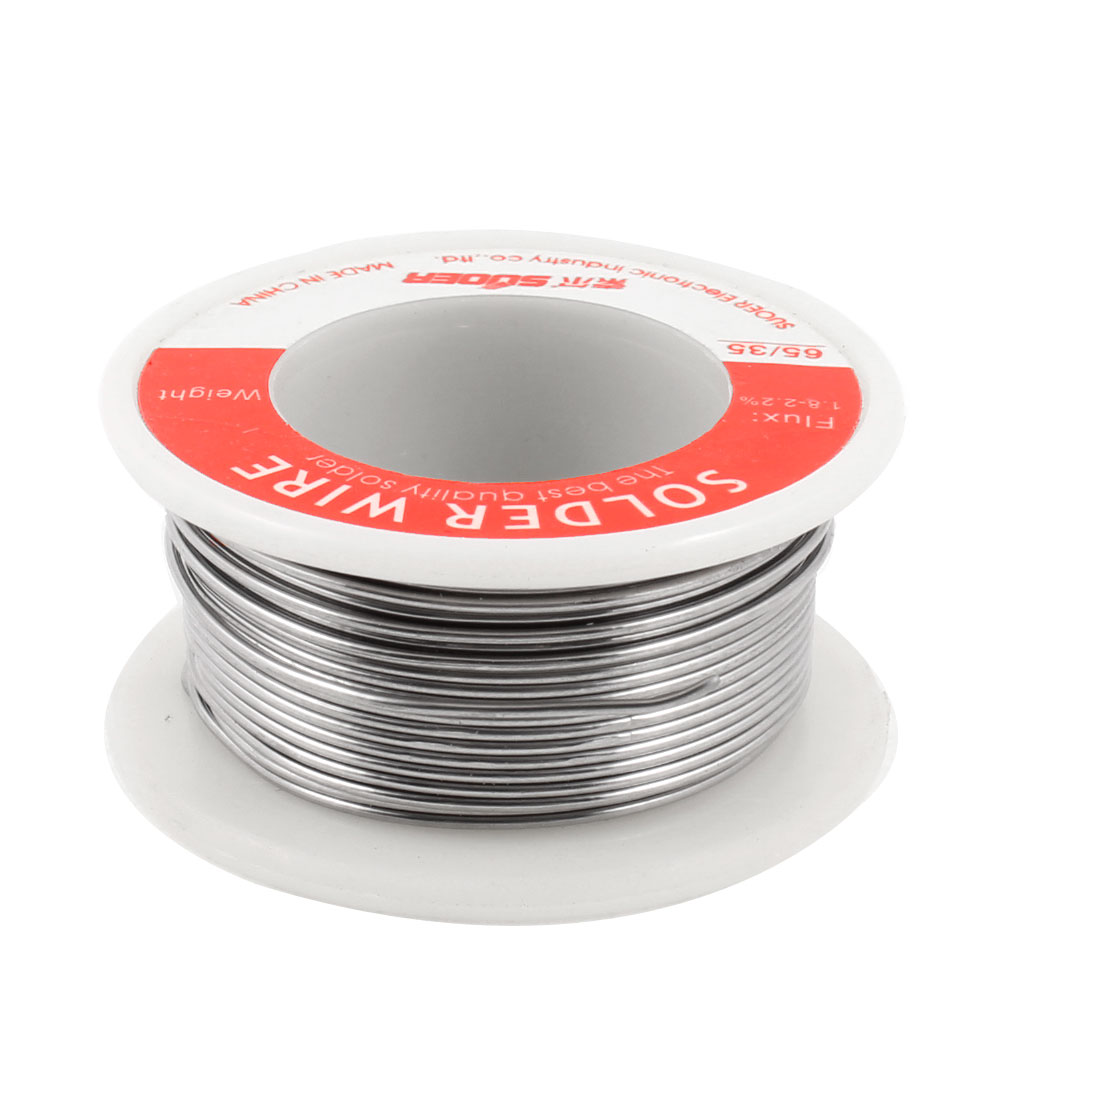 0.8mm Diameter 65/35 Flux Tin Lead Solder Soldering Wire Spool 1.3M Length